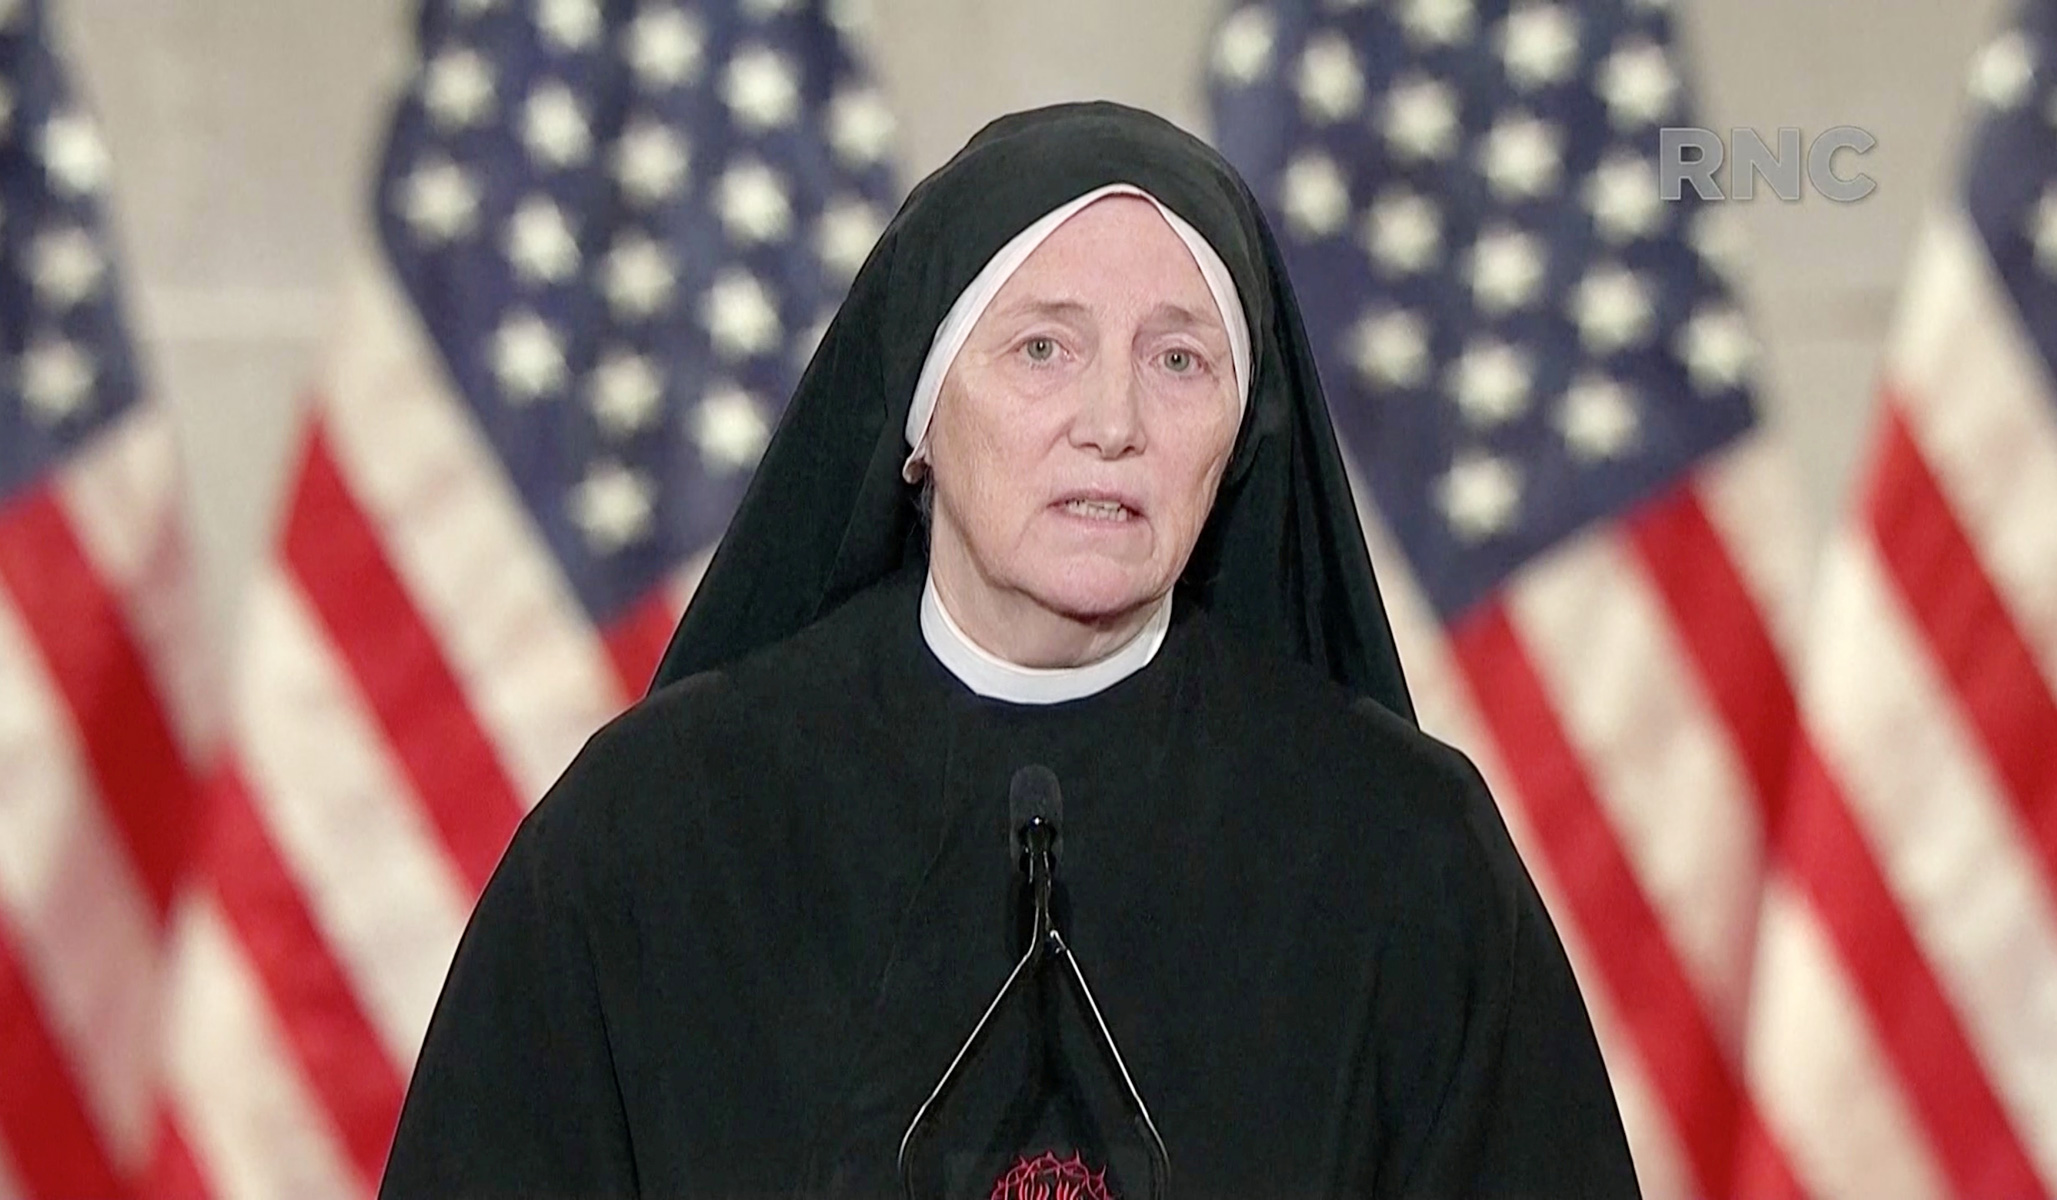 'The Largest Marginalized Group': Sister Dierdre Byrne Likens Unborn Children to Refugees in RNC Address thumbnail